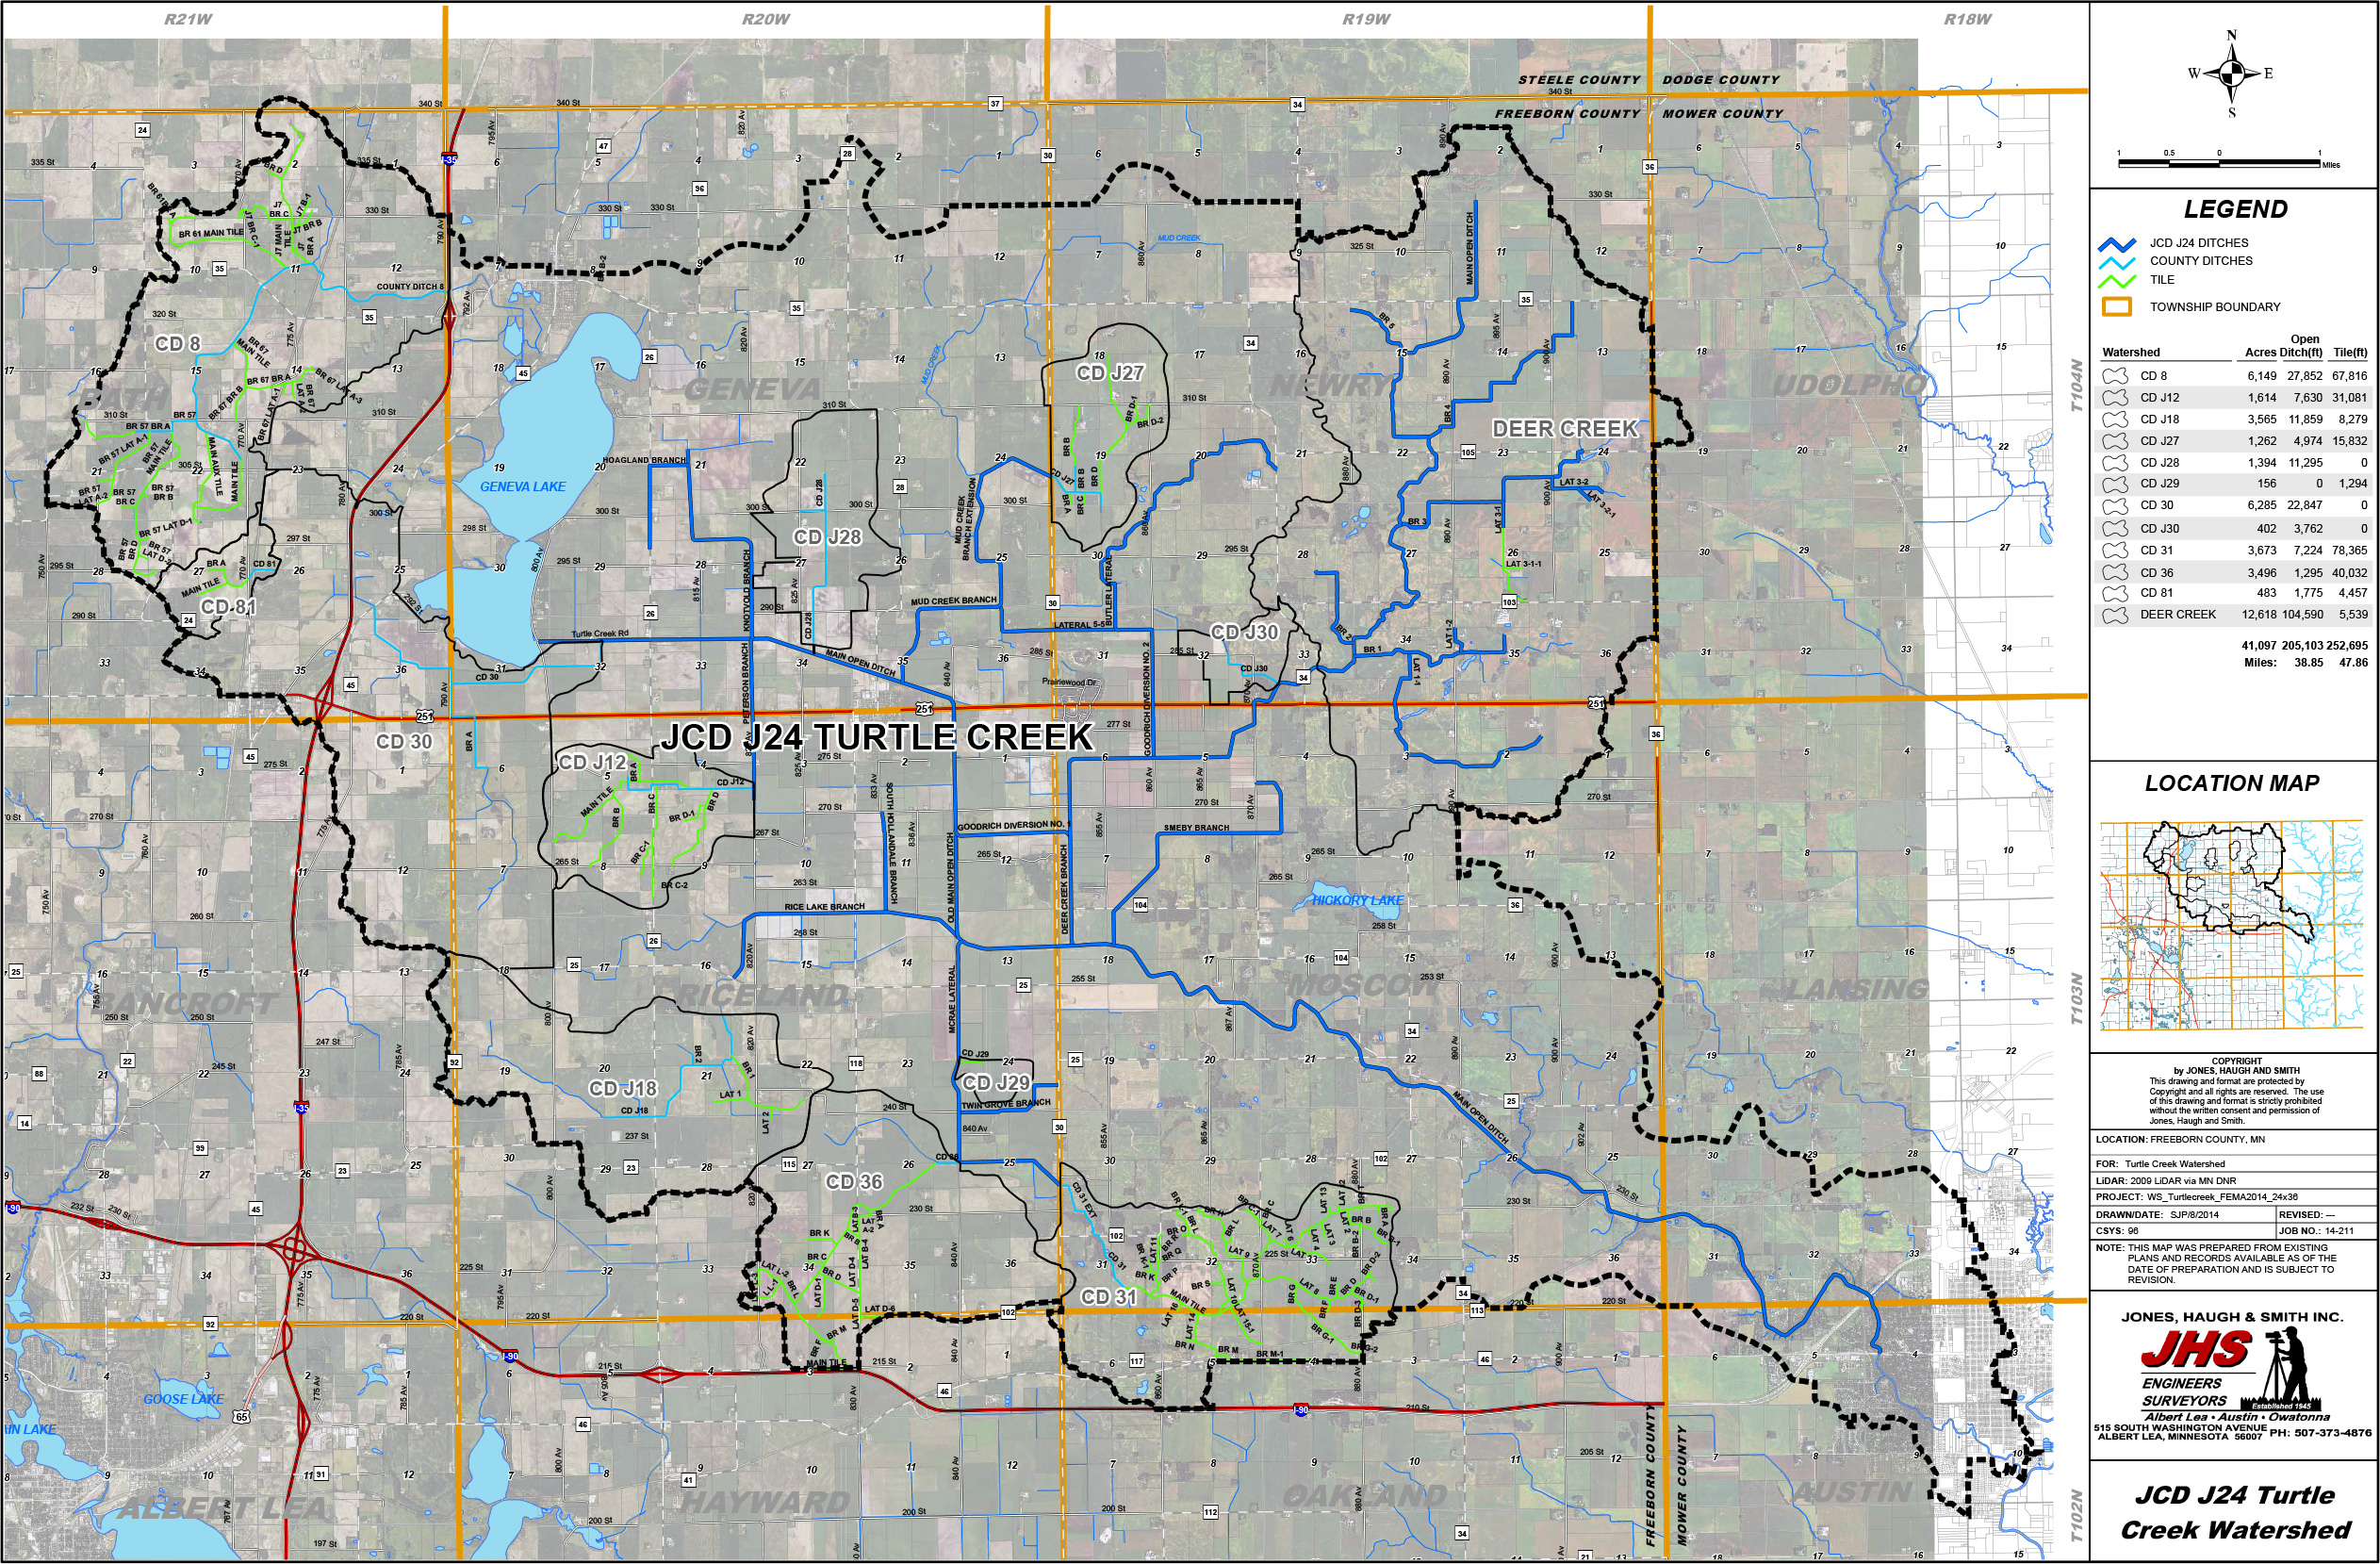 Turtle Creek Watershed Map